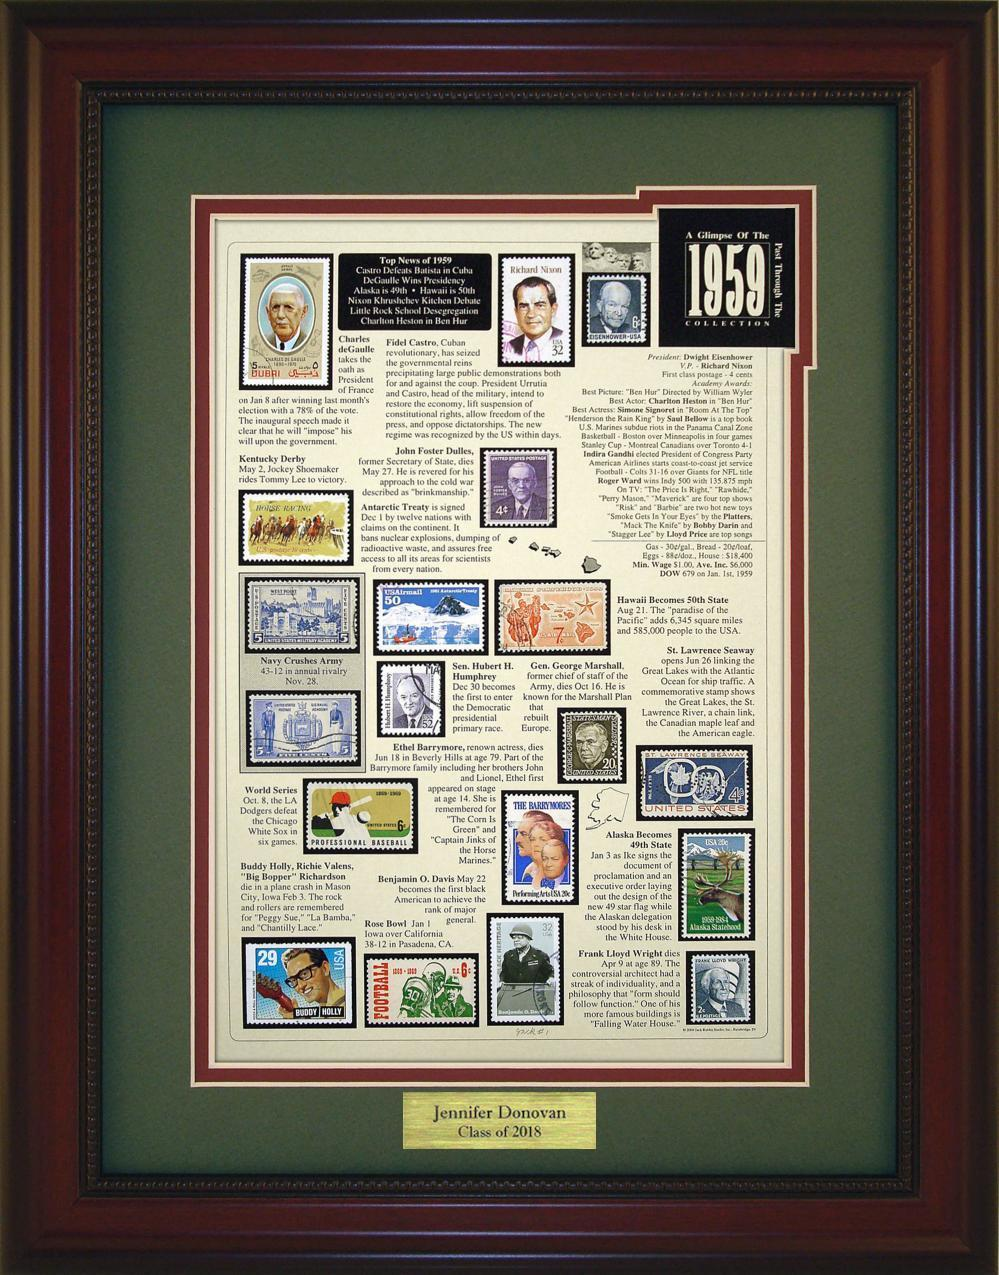 Year 1959 - Personalized Unique Framed Gift